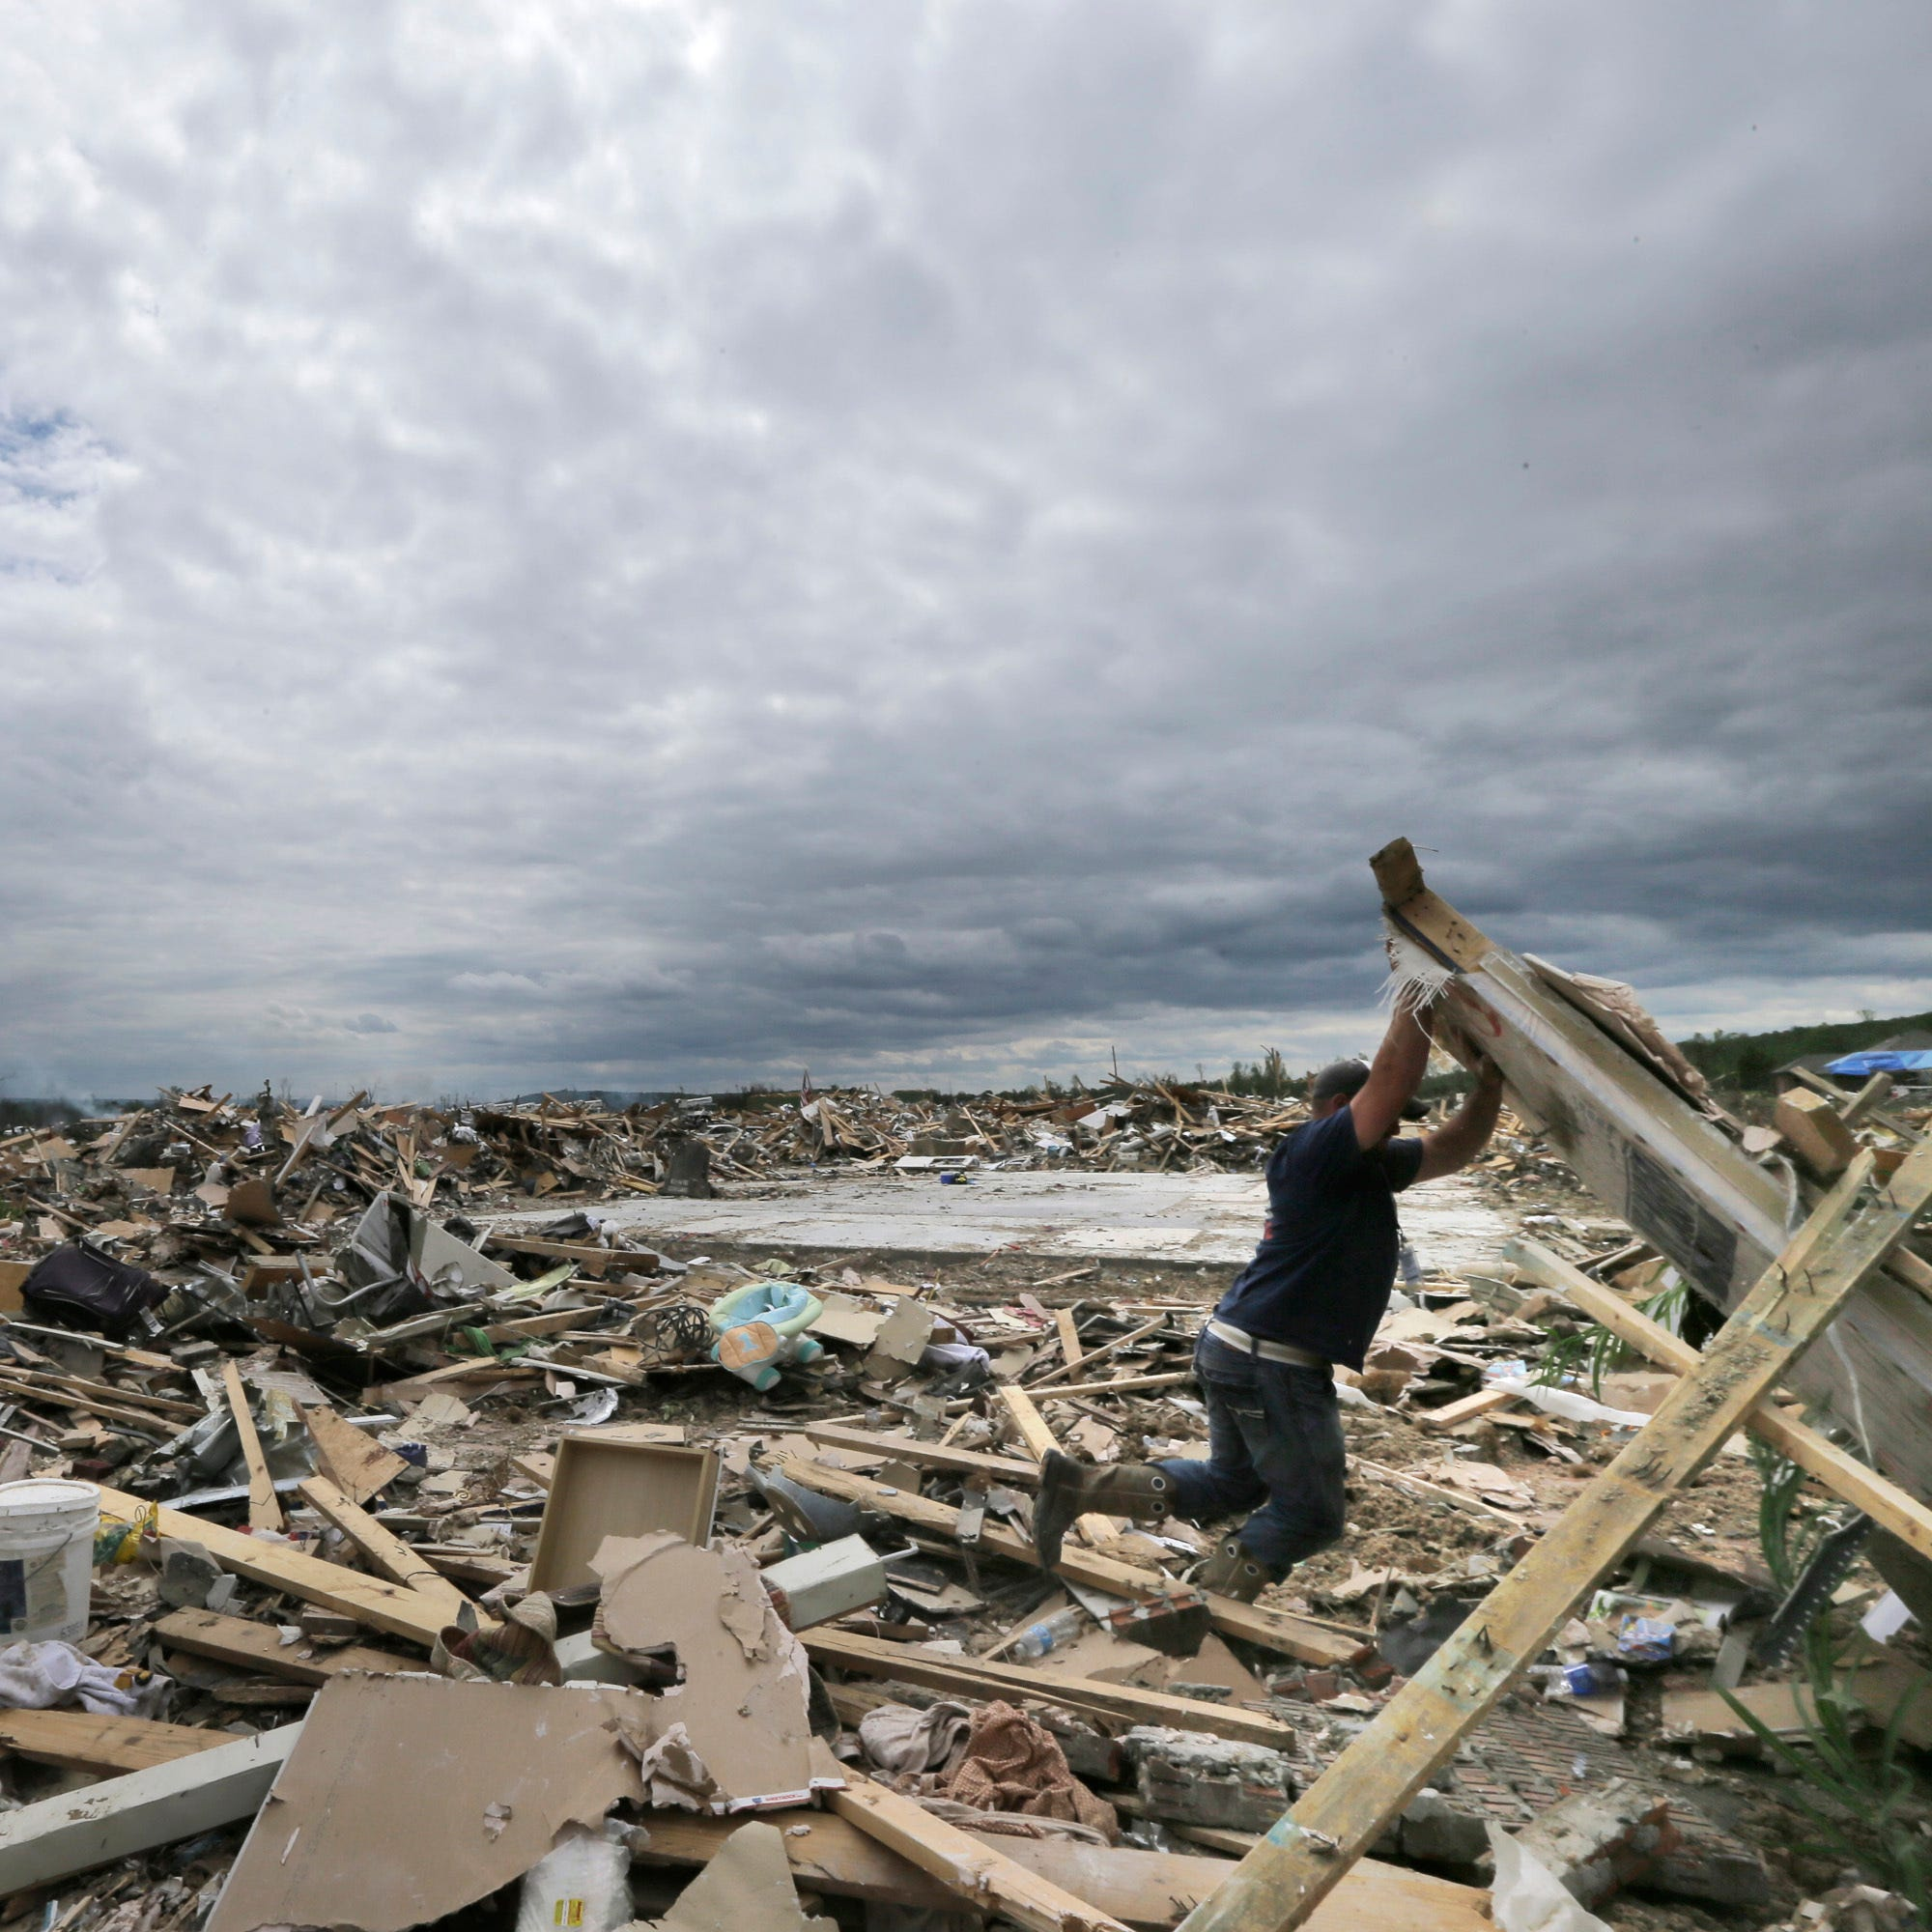 More tornadoes are spinning up in Tennessee and states east of the Mississippi